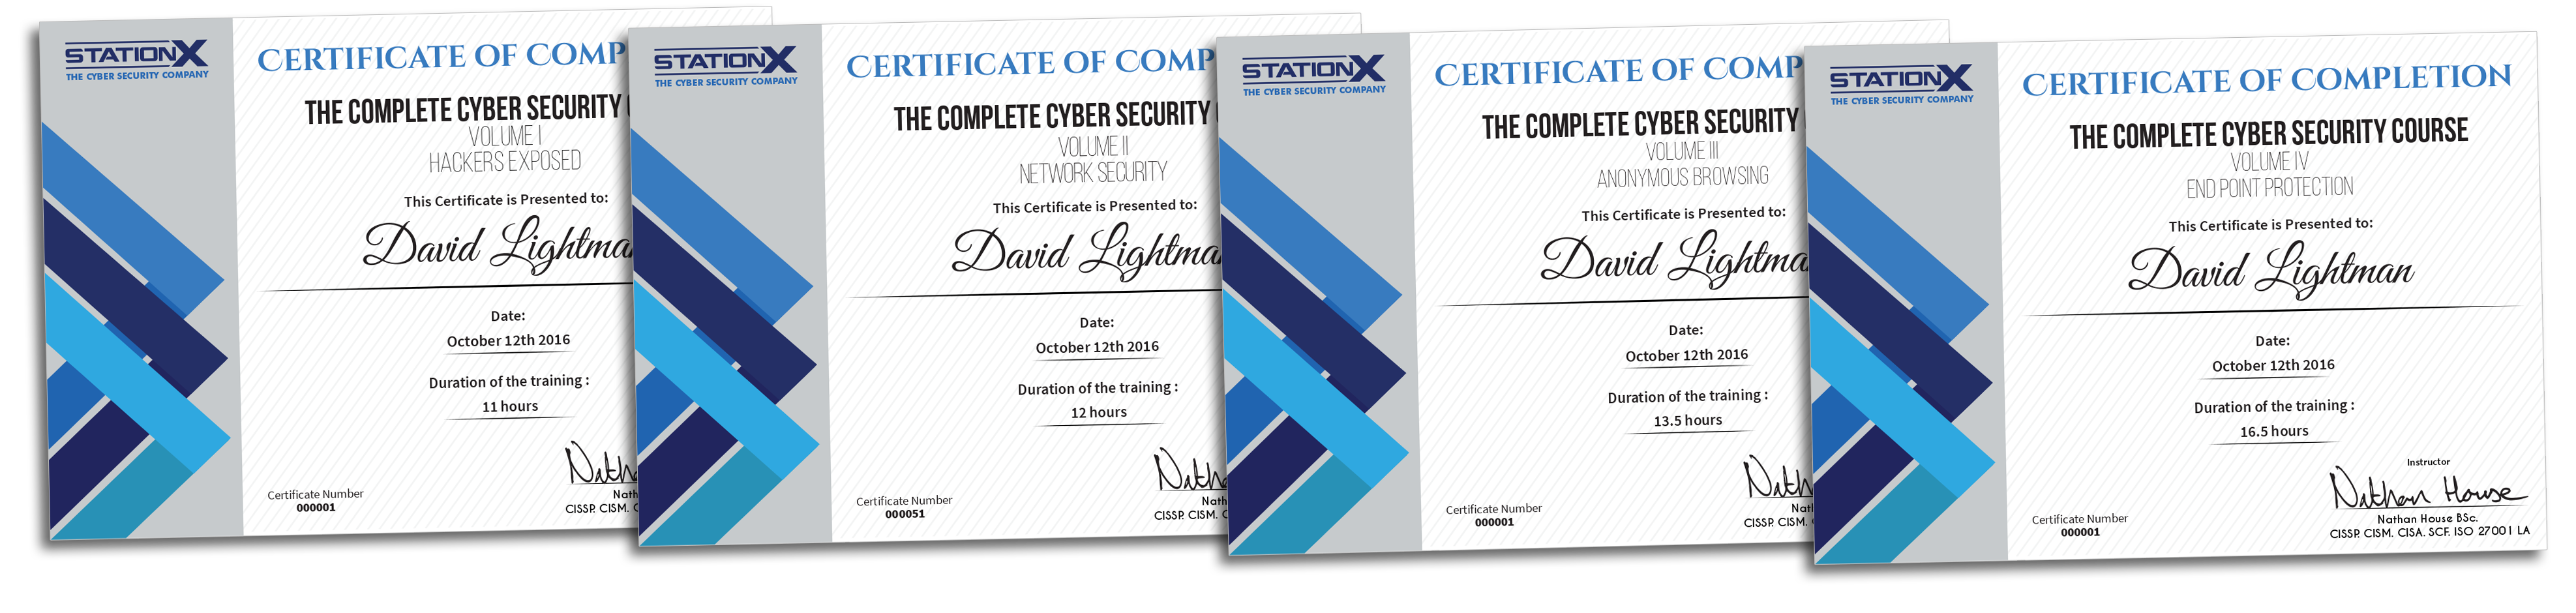 The Complete Cyber Security Course! - Station X | The